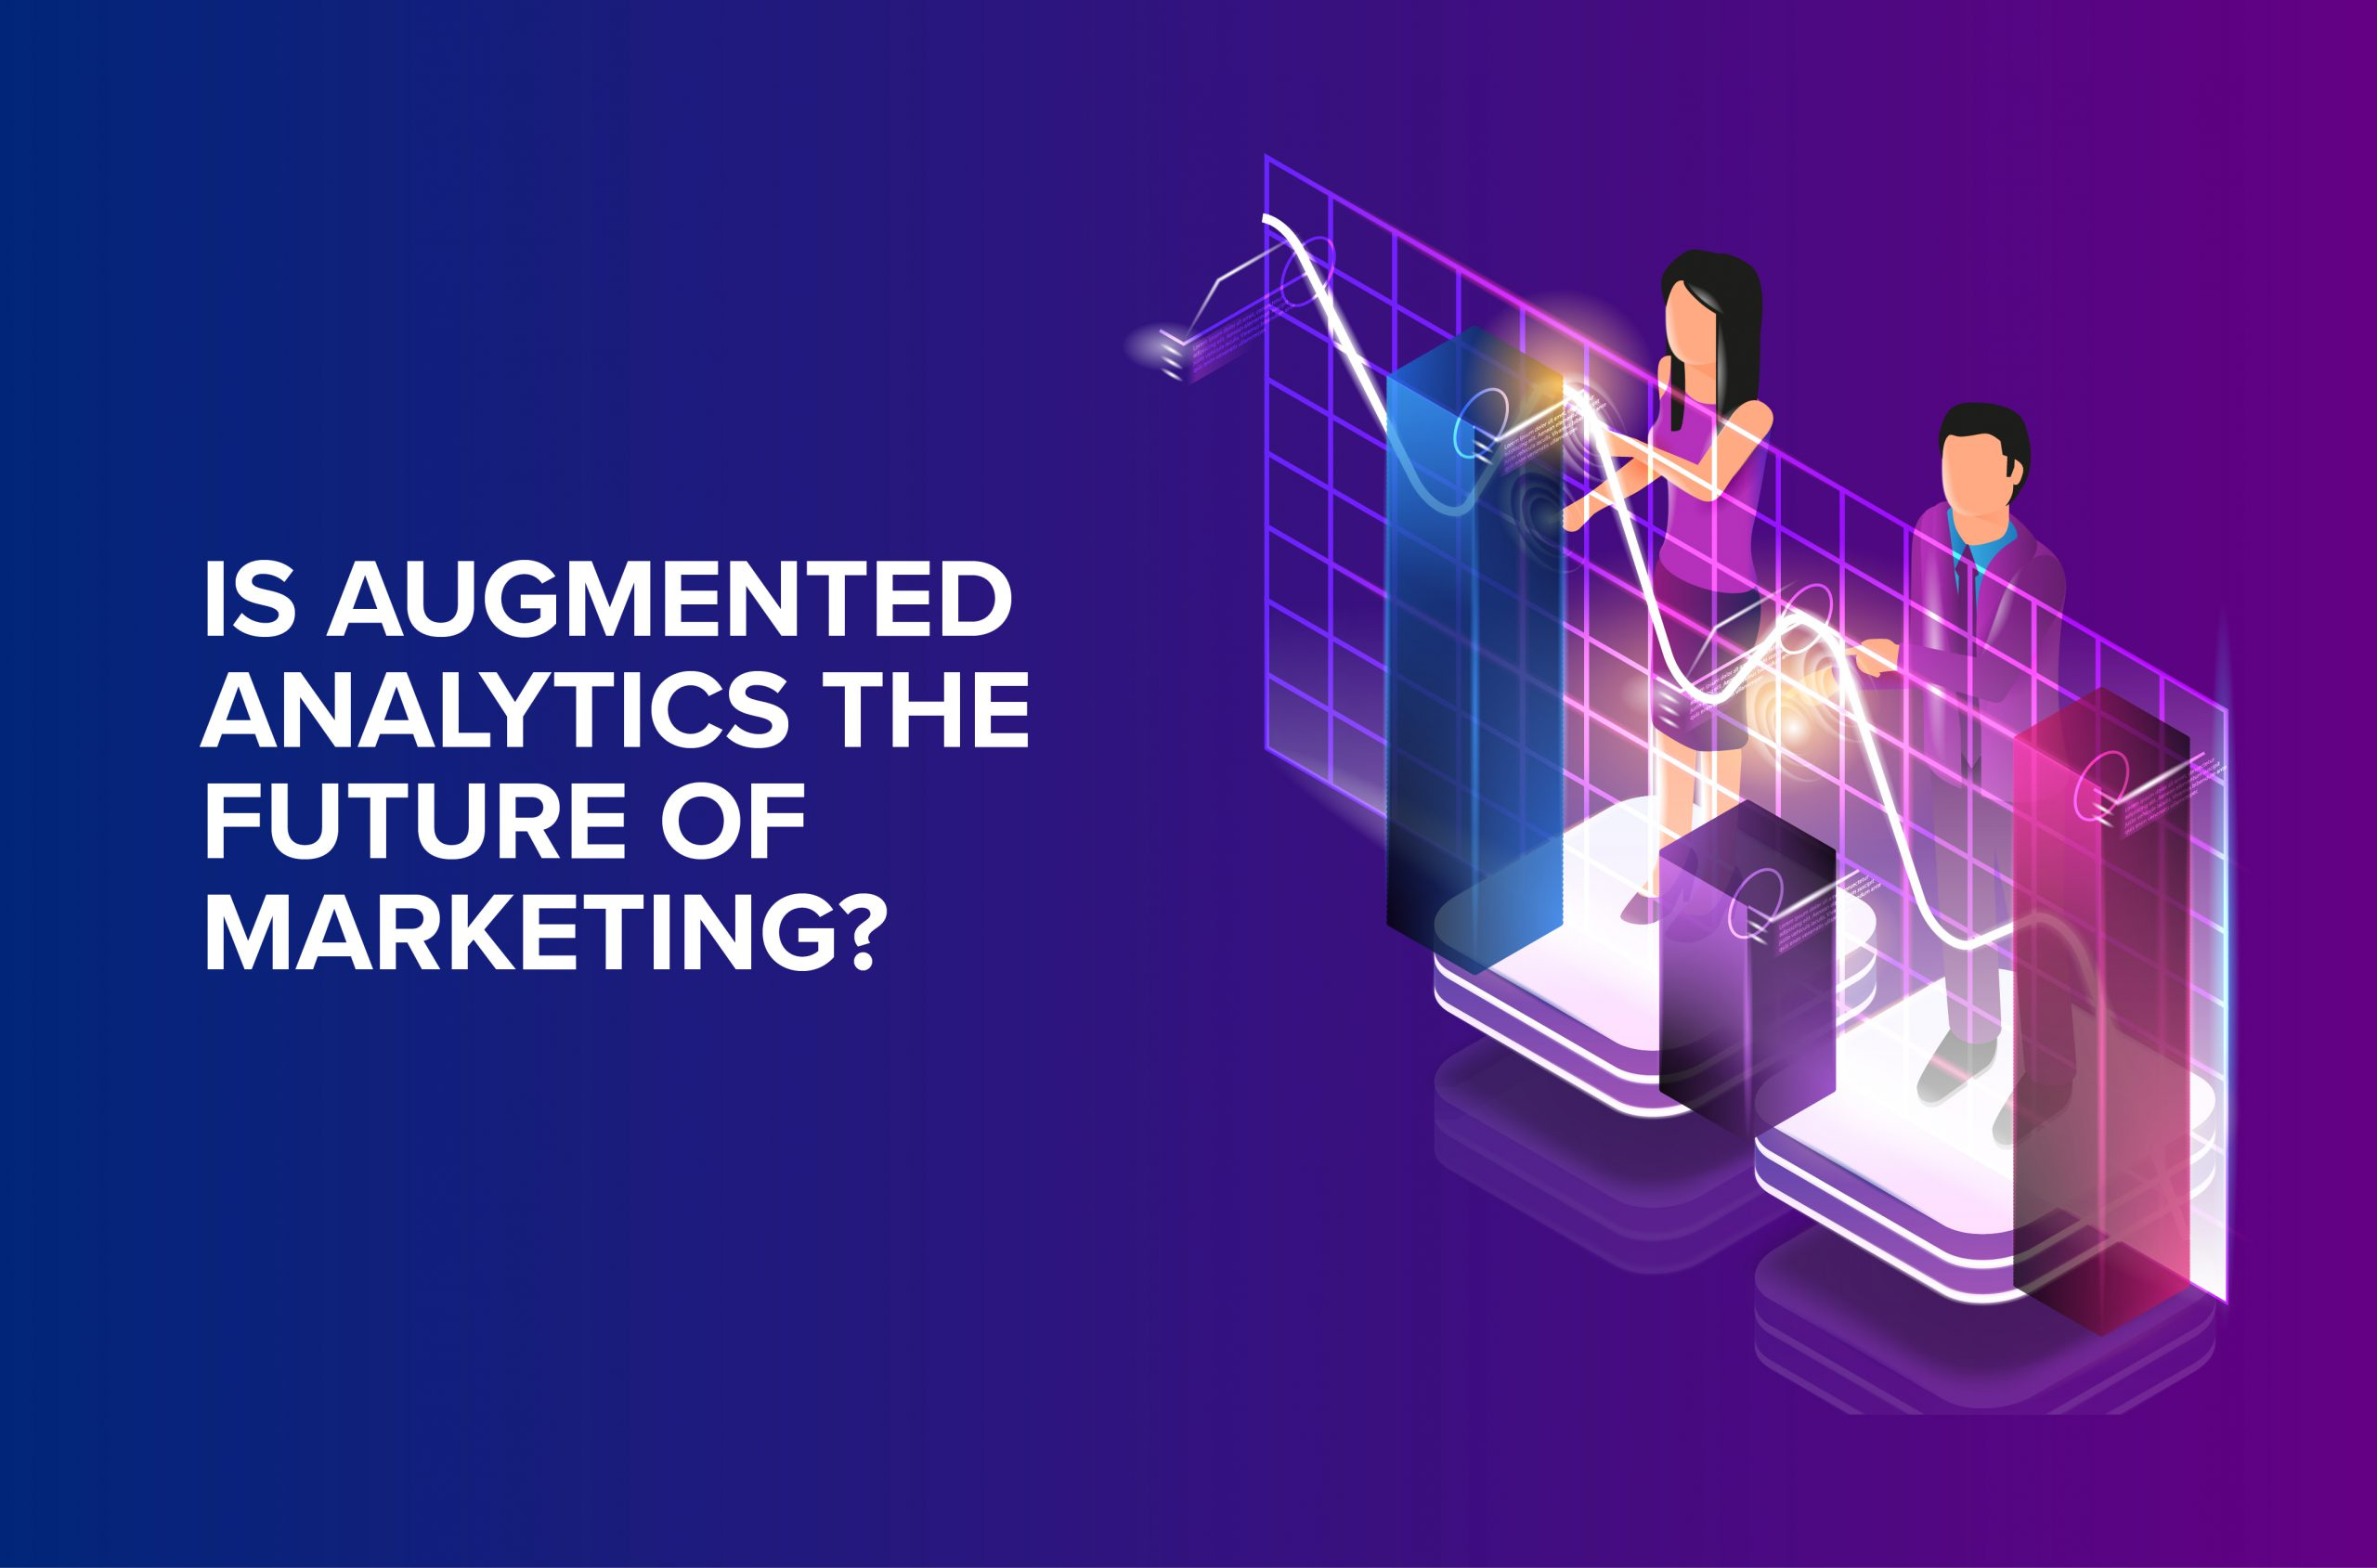 Is Augmented Analytics the Future of Marketing?